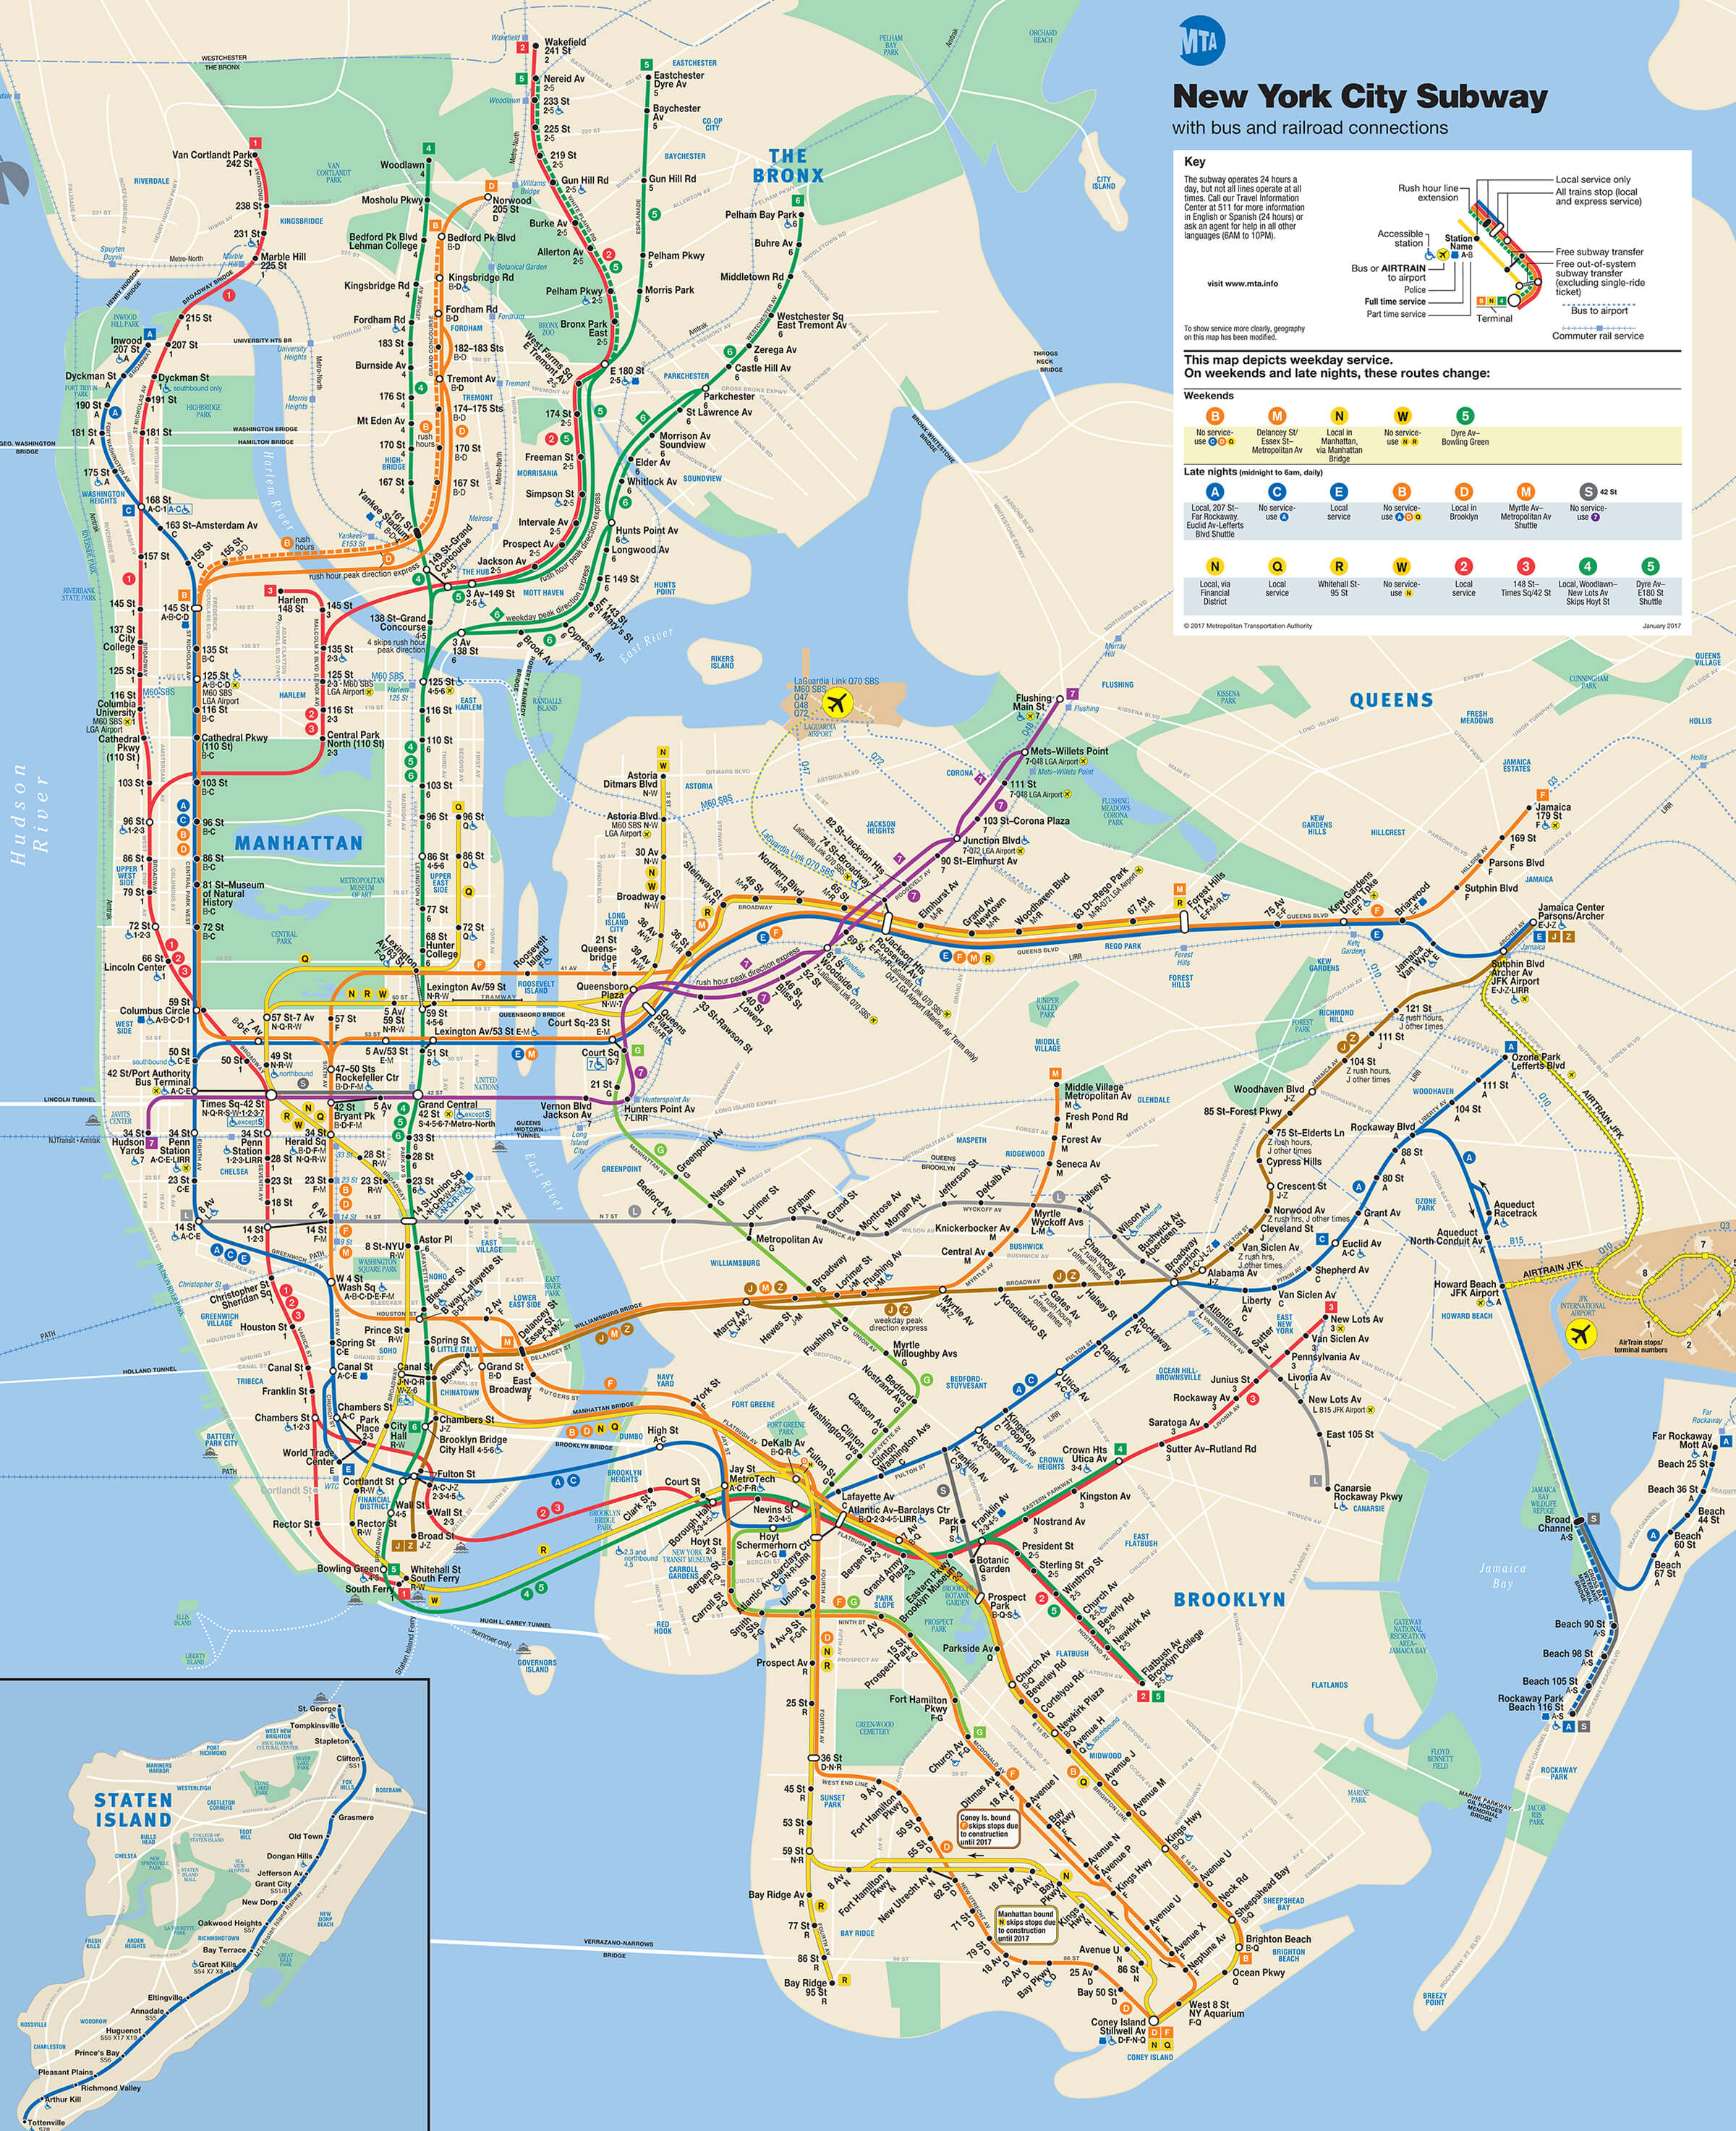 NYC Subway Map - The Ultimate New York City Subway Guide